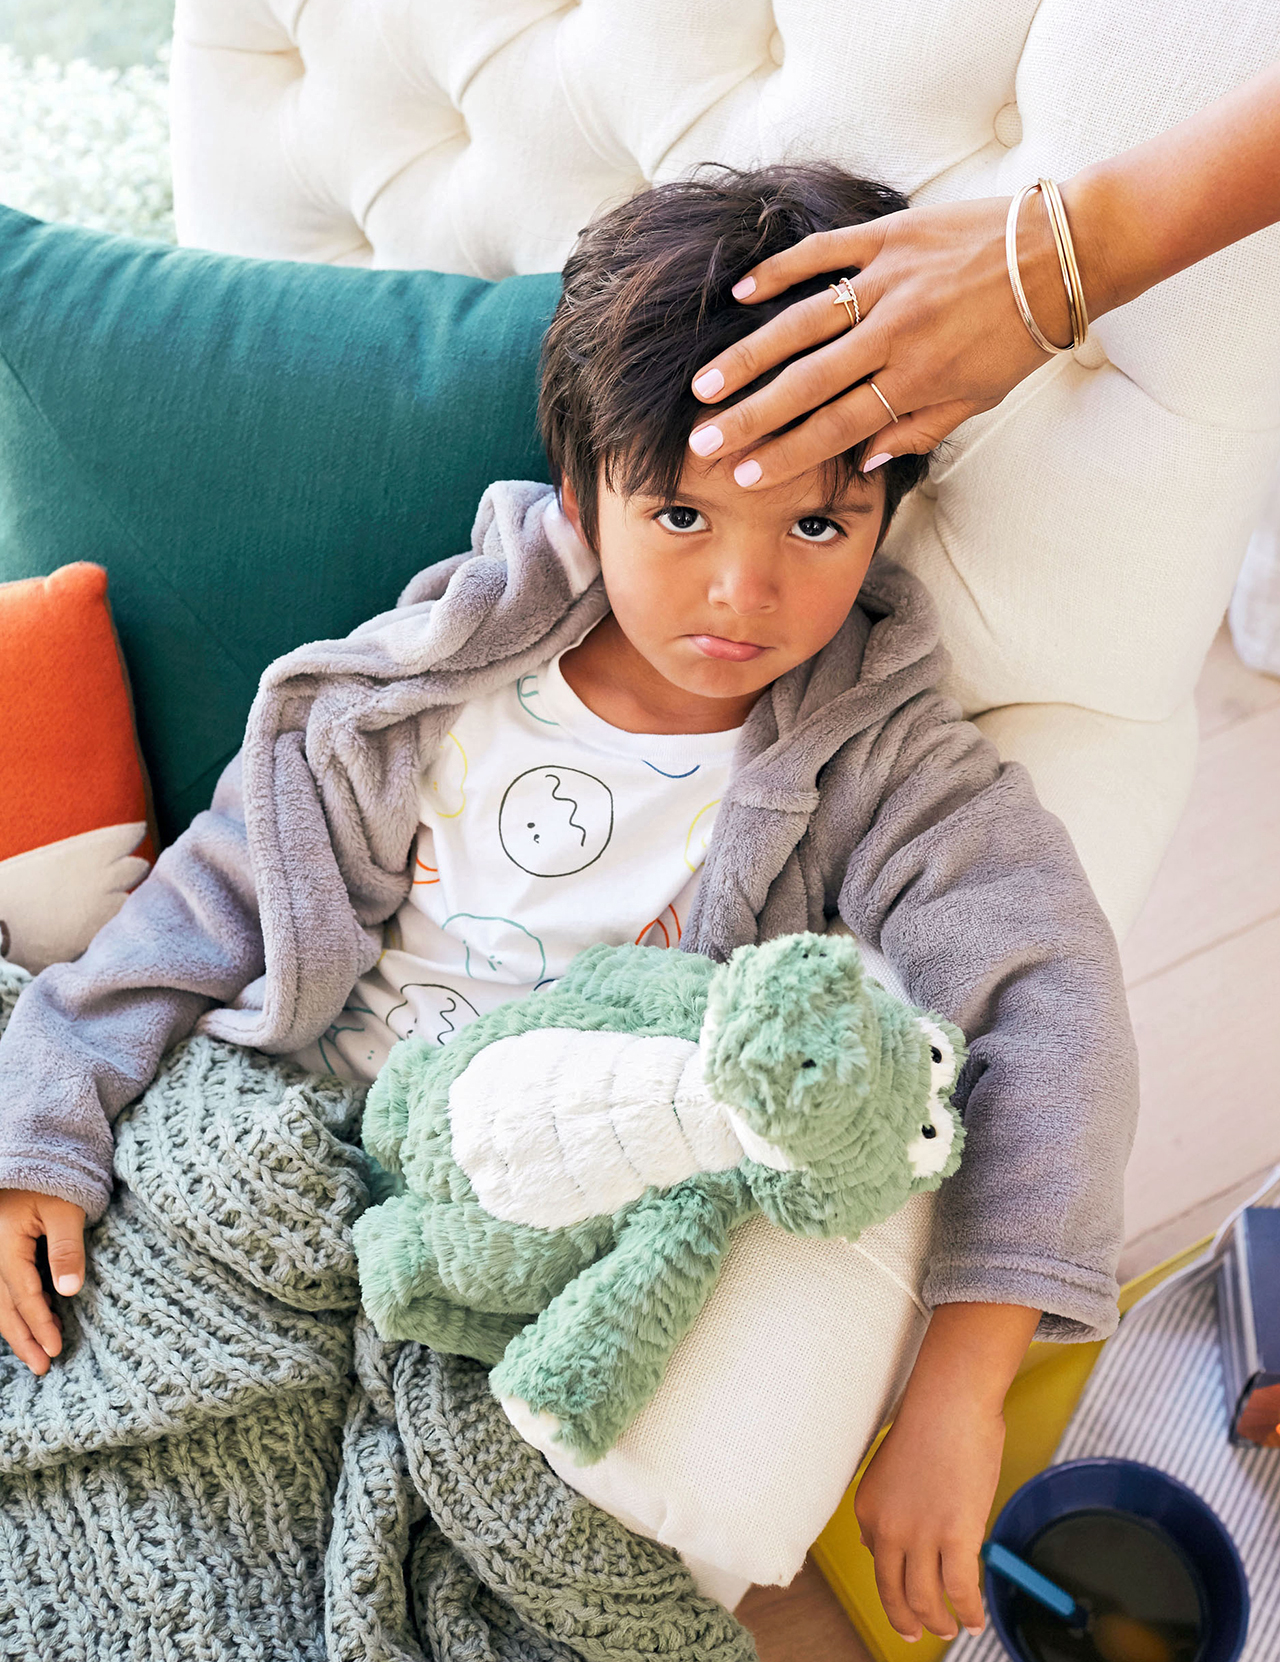 sad young boy on chair with fever